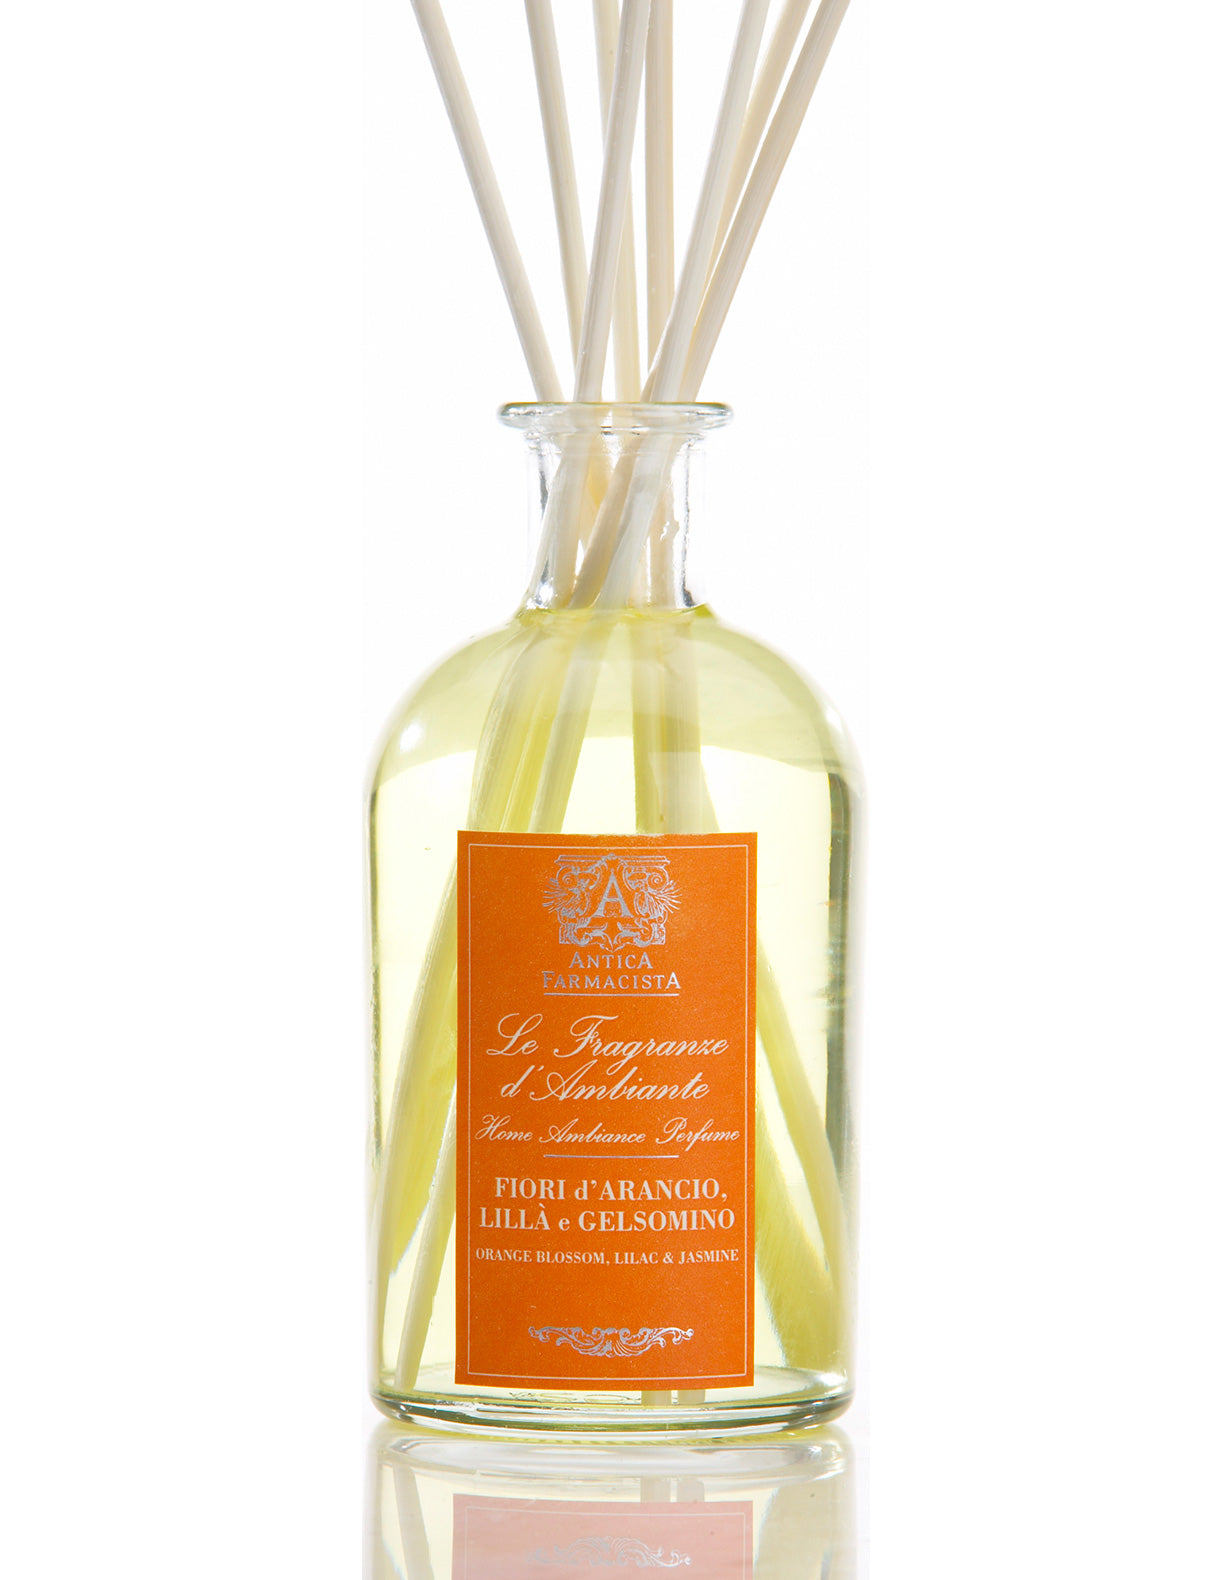 ANTICA FARMACISTA - 250ML DIFFUSER ORANGE BLOSSOM, LILAC & JASMINE